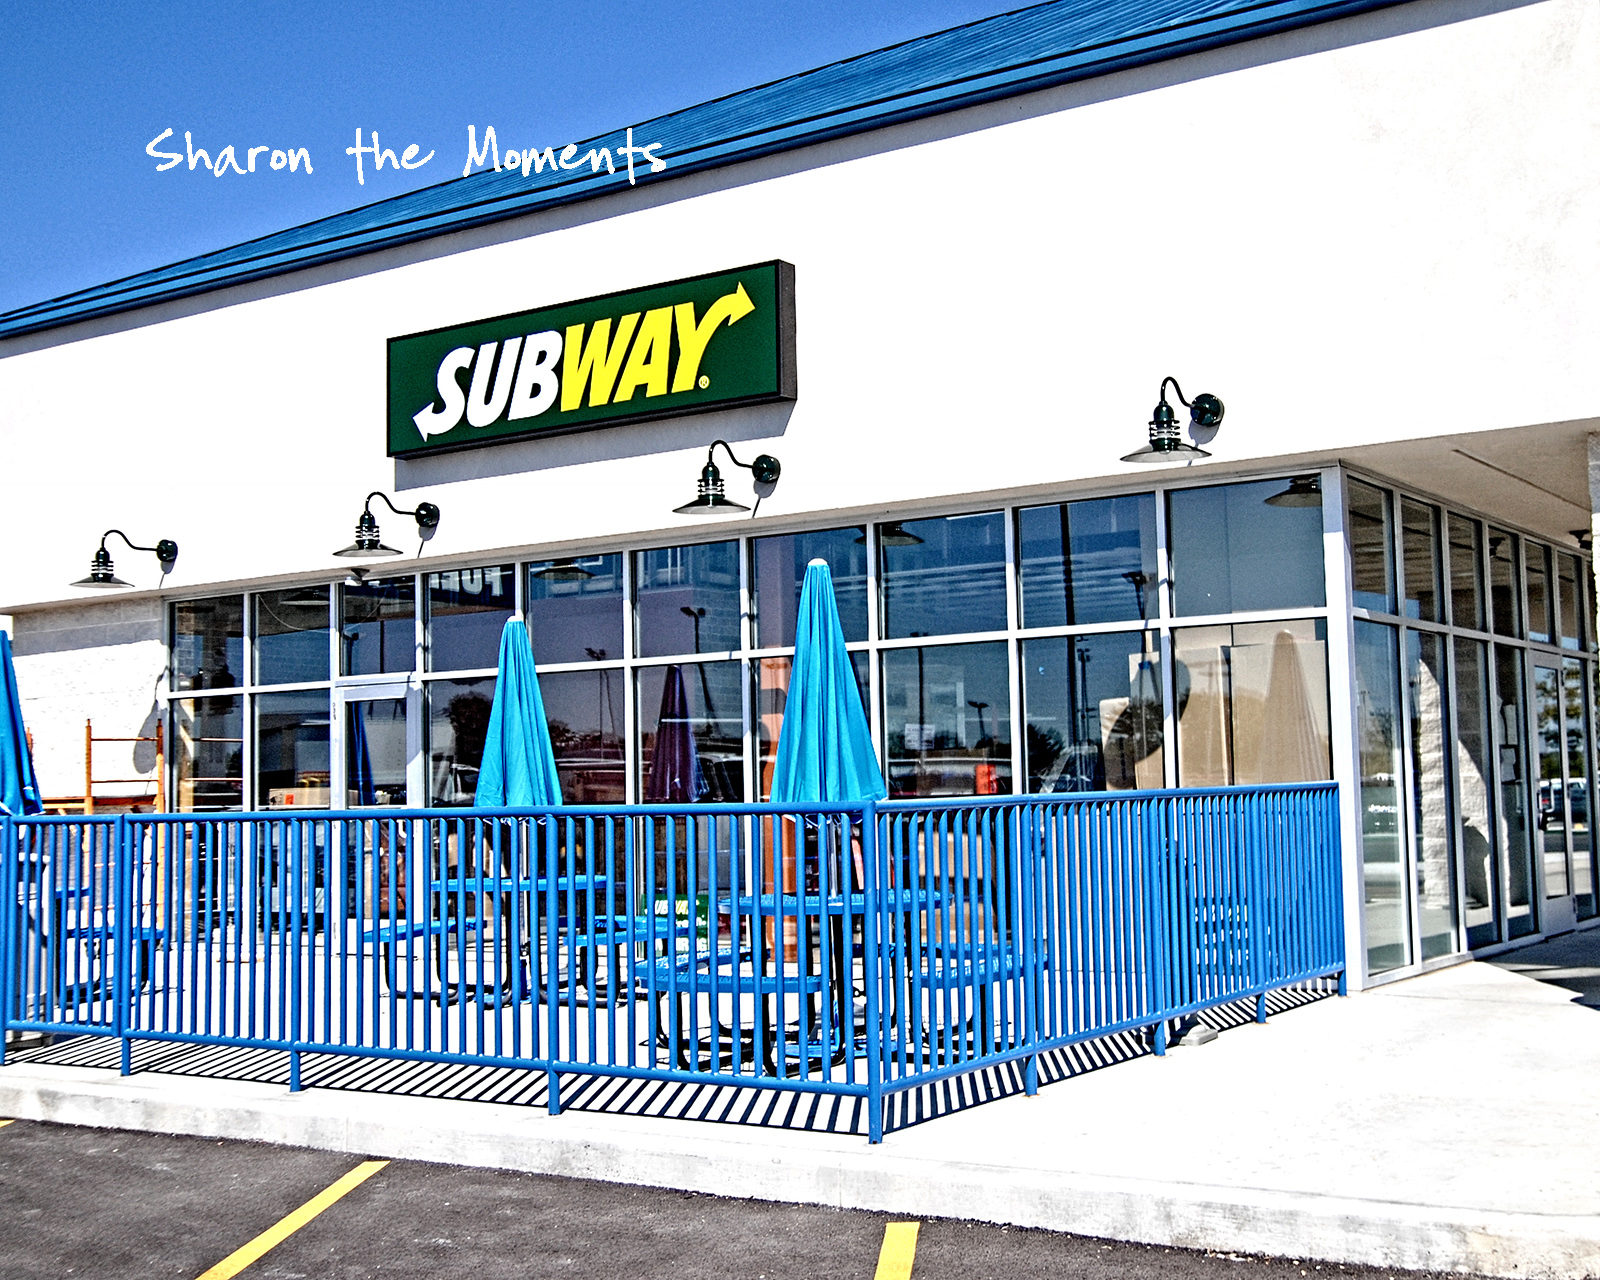 Subway at Blog Event at Ricart Automotive Auto Mall Columbus Ohio .. We're Dealin!|Sharon the Moments blog